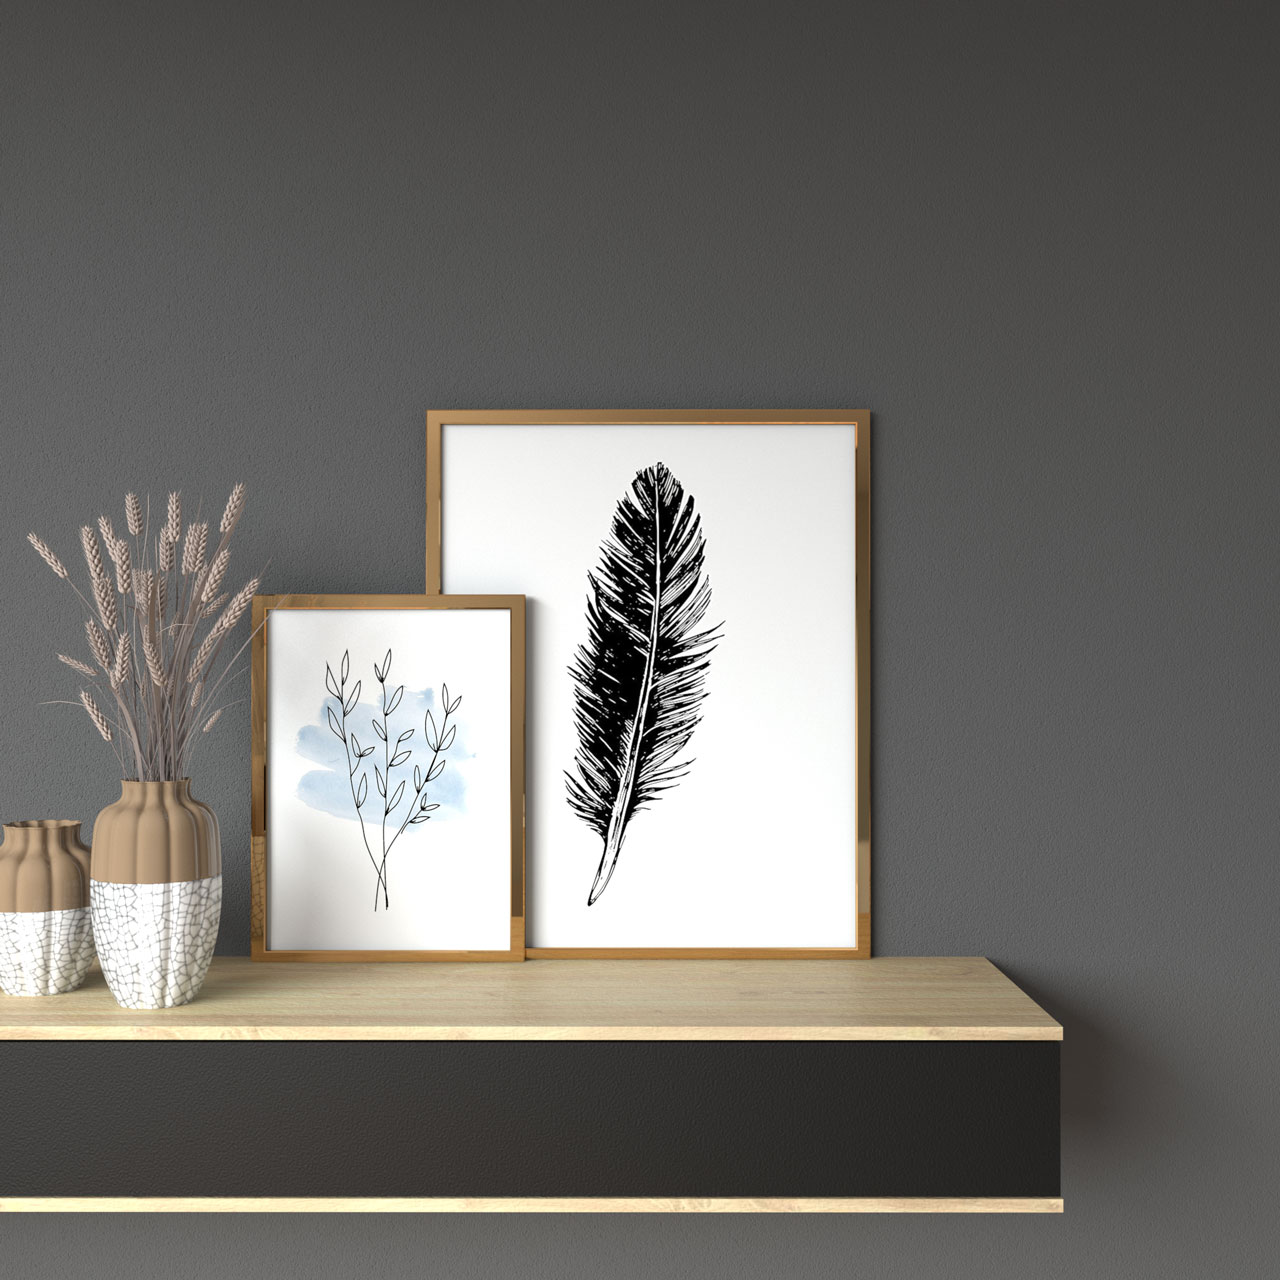 Gray wall with gold picture frames